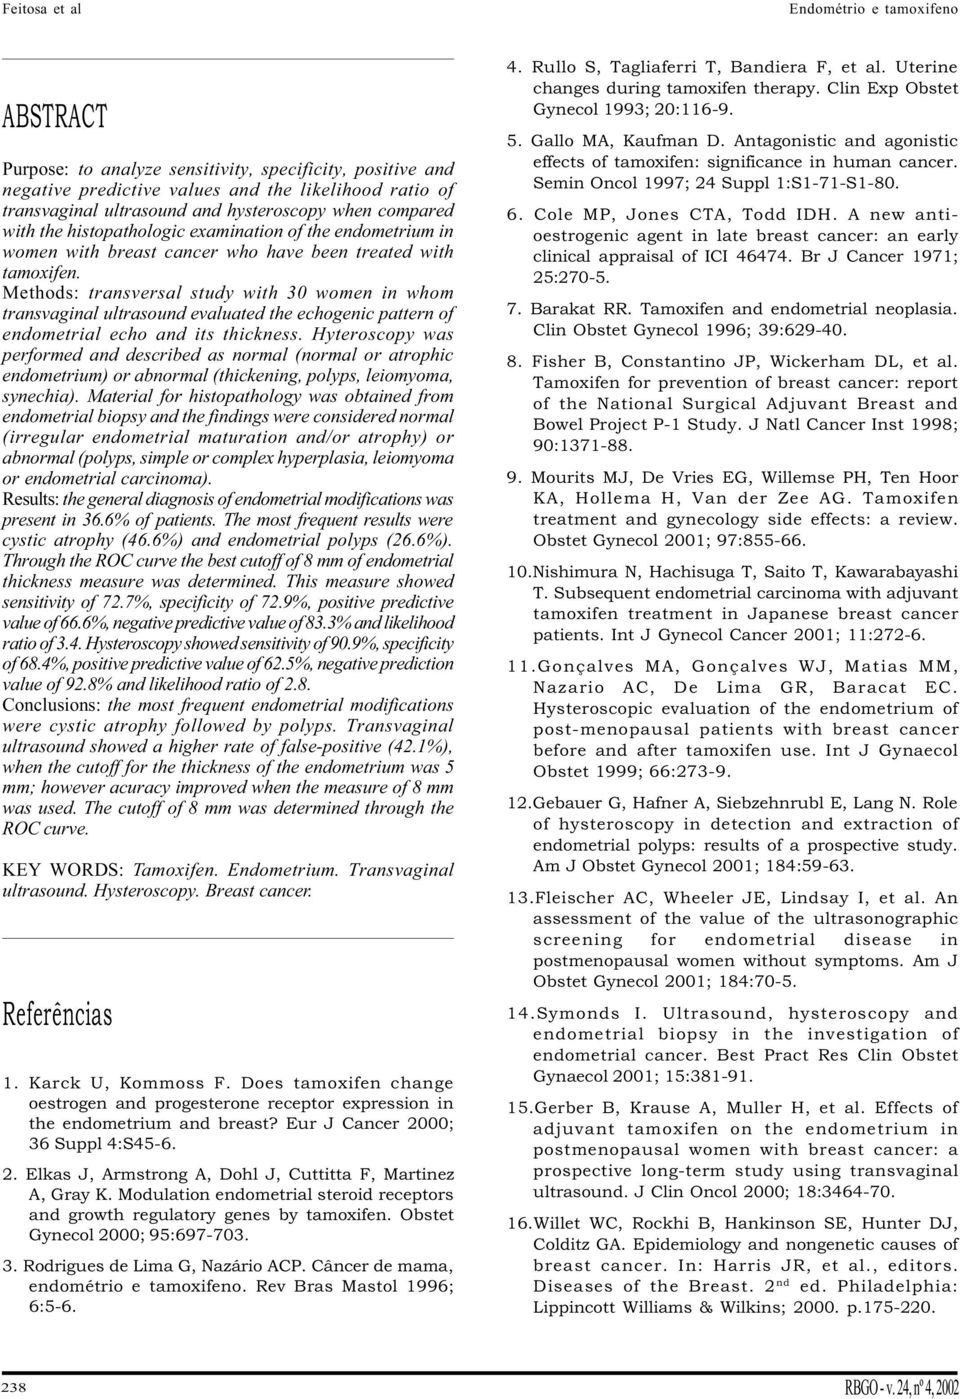 Methods: transversal study with 30 women in whom transvaginal ultrasound evaluated the echogenic pattern of endometrial echo and its thickness.